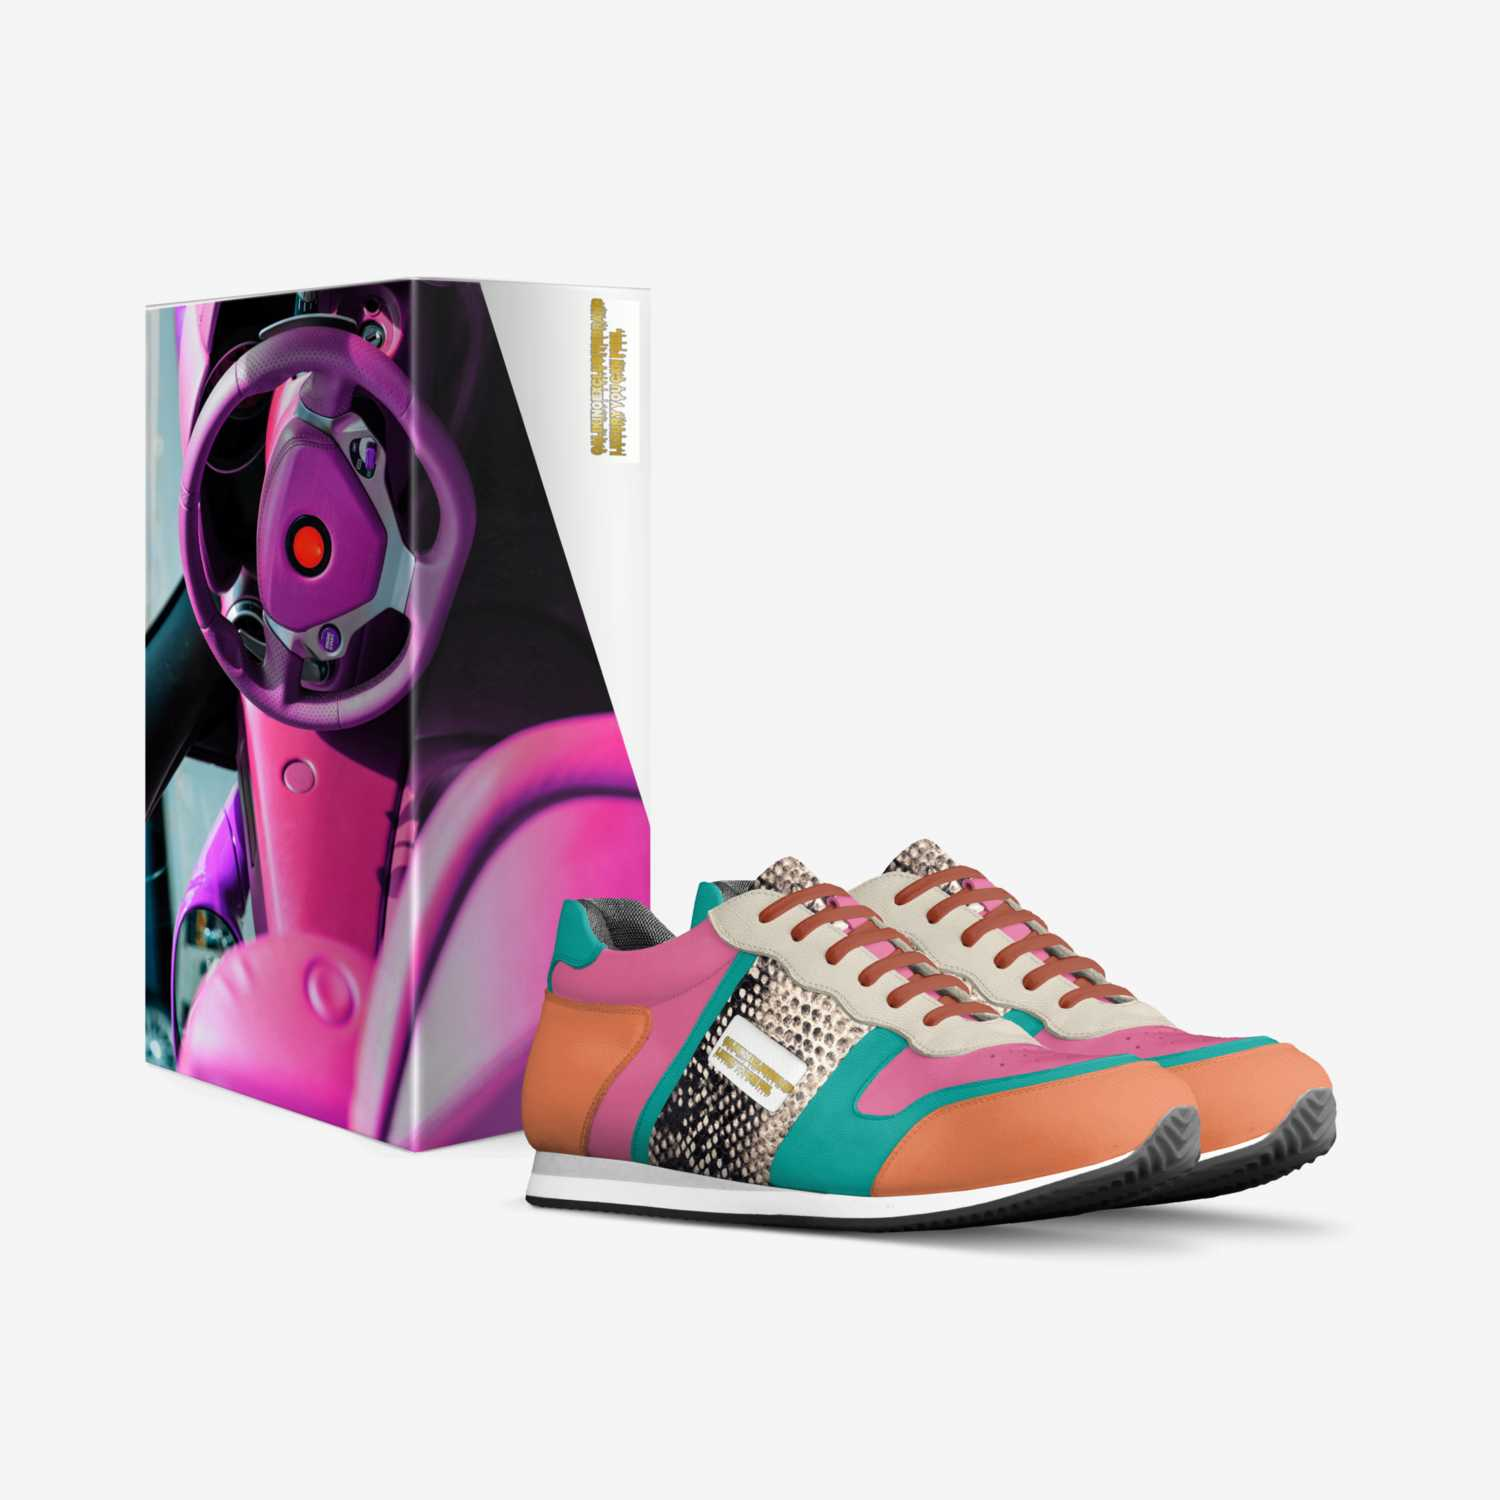 CKE COLOR WAVE M.D custom made in Italy shoes by Cameron Mabins | Box view